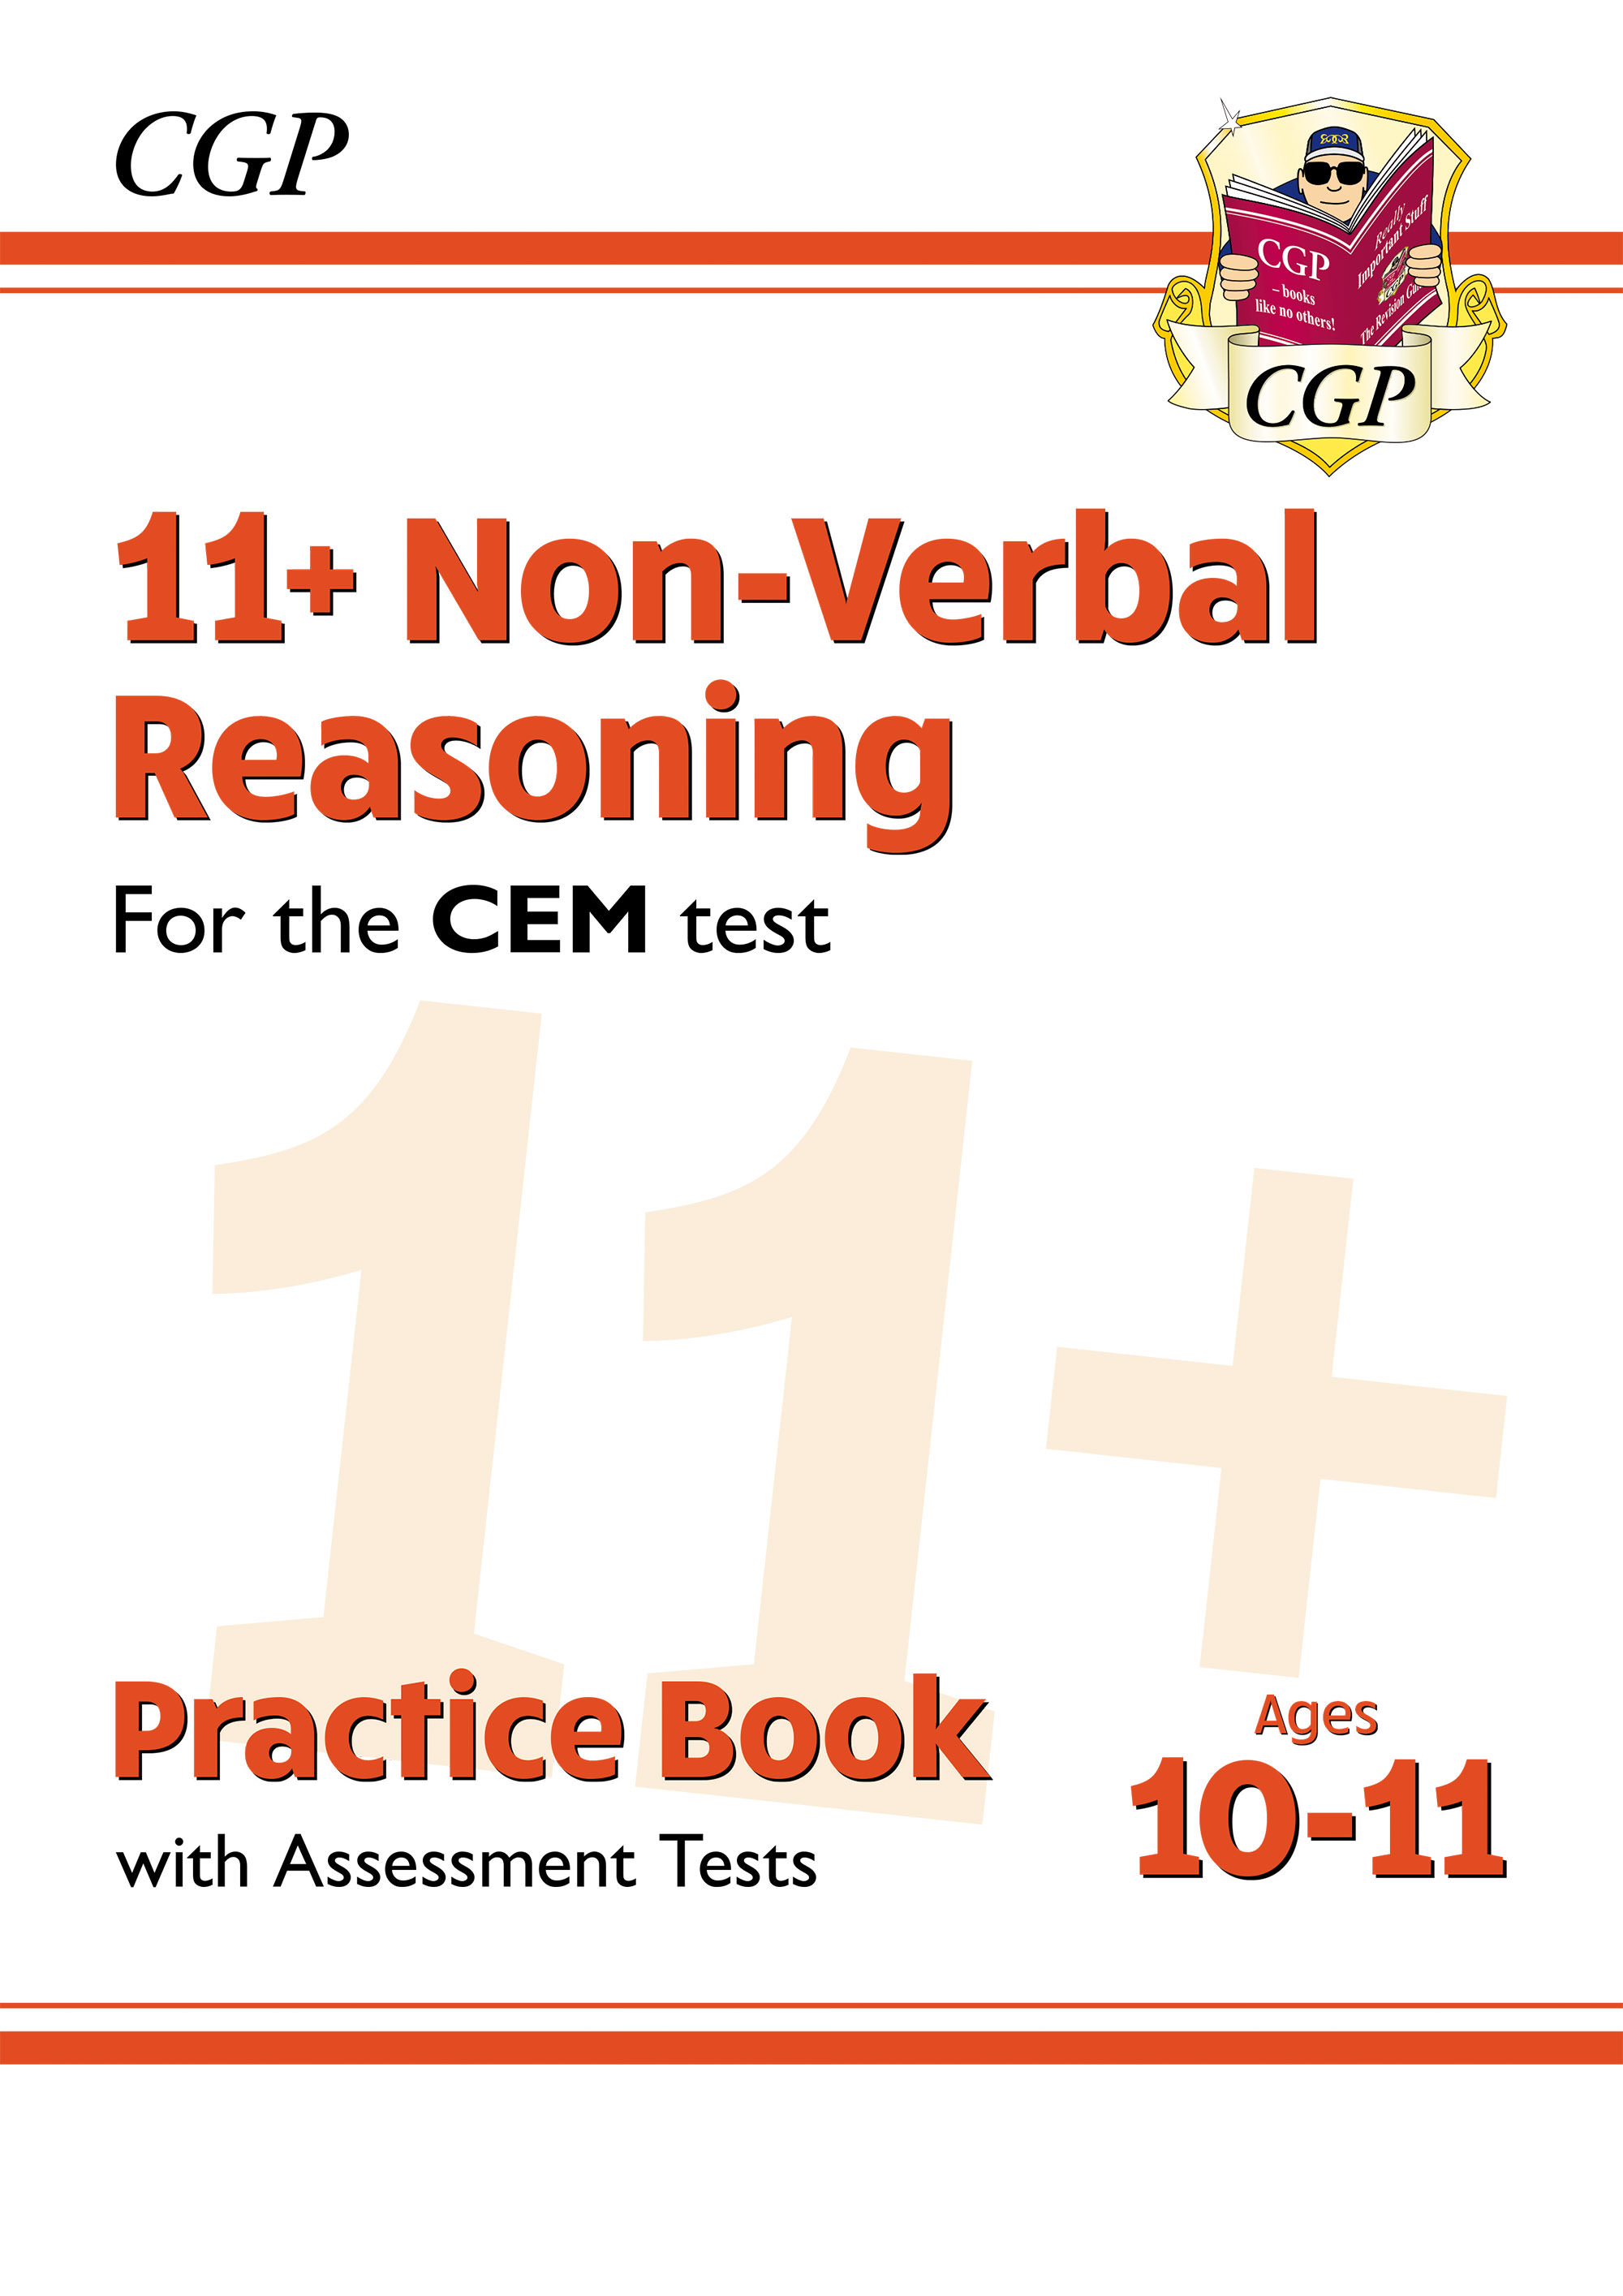 N6QDE2DK - New 11+ CEM Non-Verbal Reasoning Practice Book & Assessment Tests - Ages 10-11 (with Onli